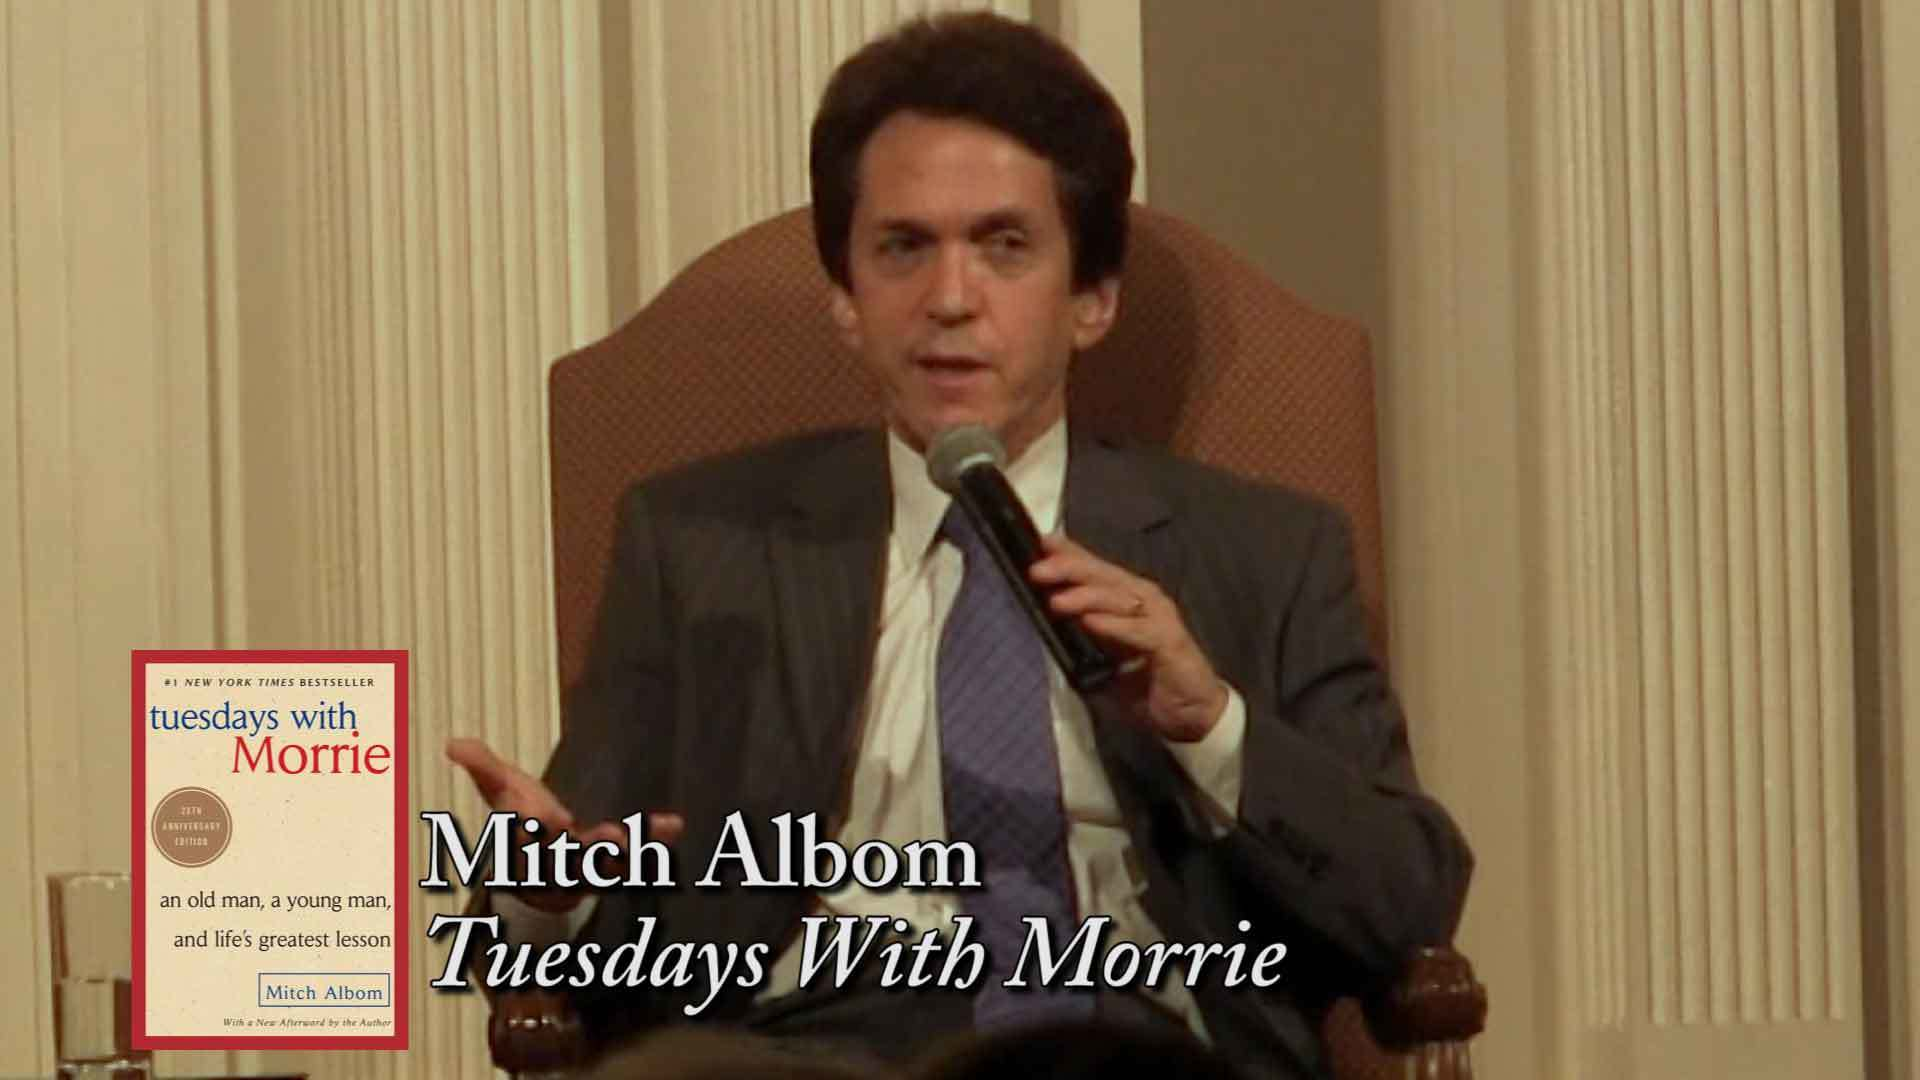 mitch albom Find great deals on ebay for mitch albom tuesday with morries shop with confidence.